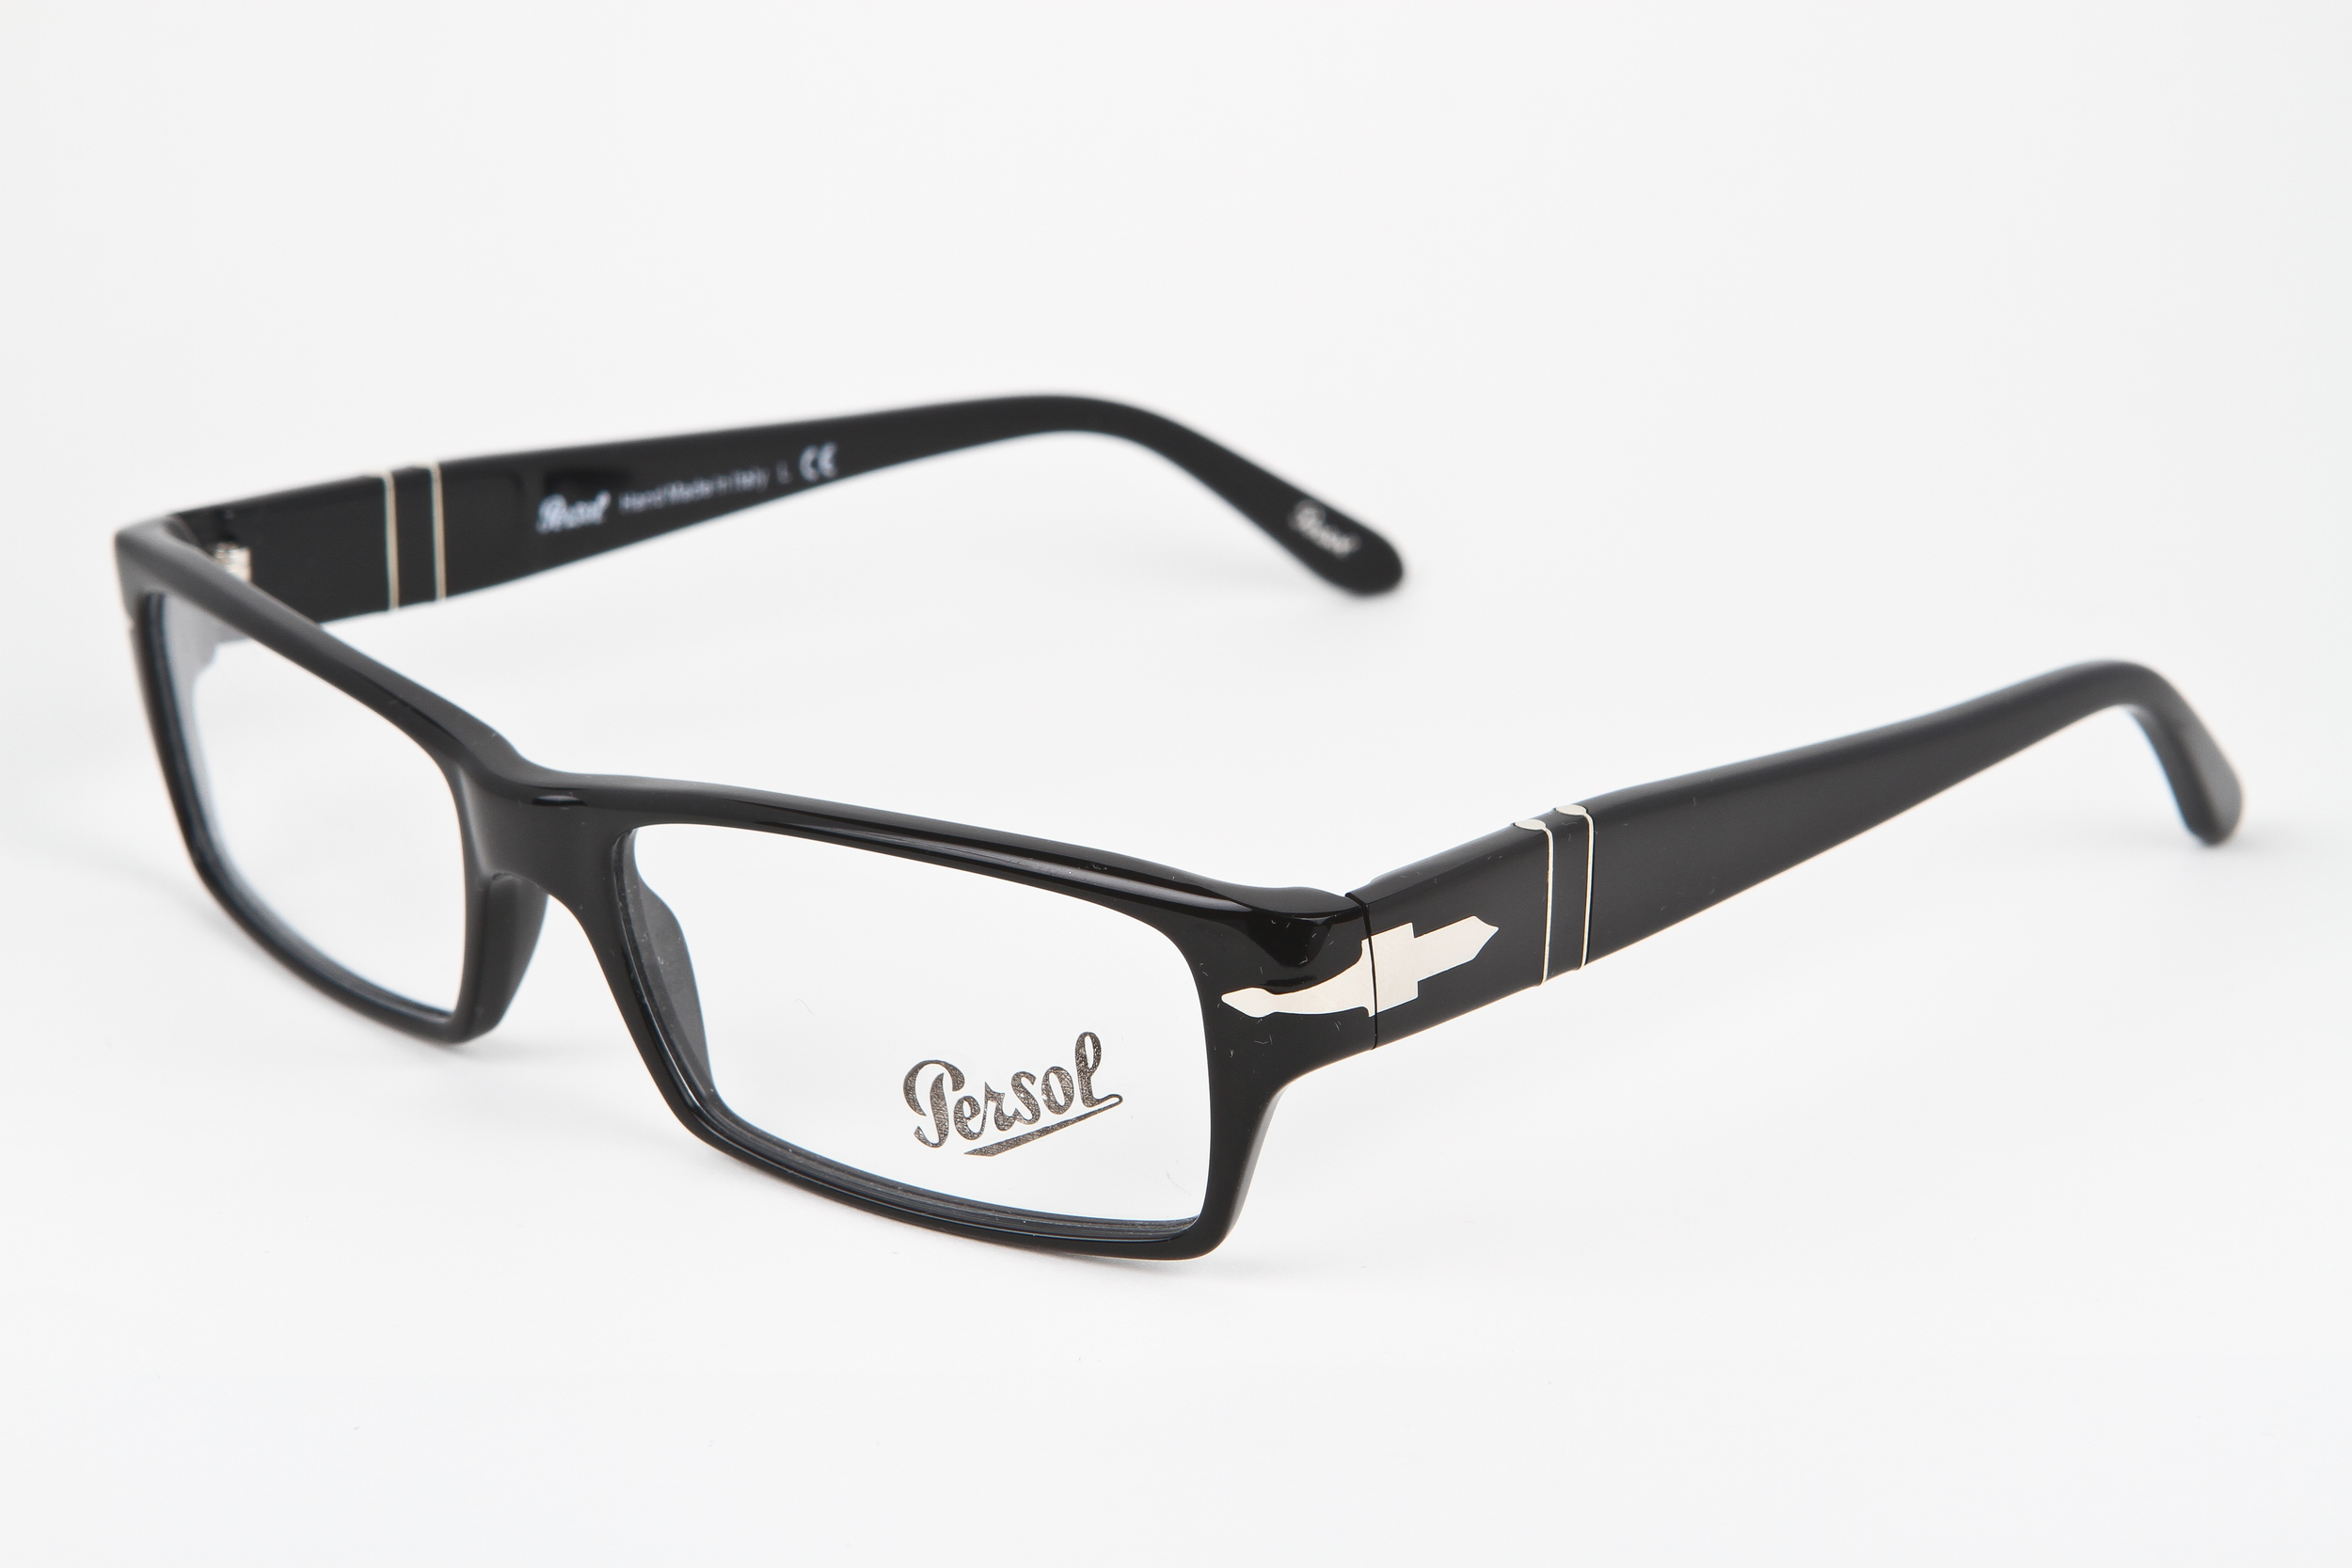 21258f92f0c5e PERSOL Black with Silver zyloware — BFOCUS-EYEWEAR